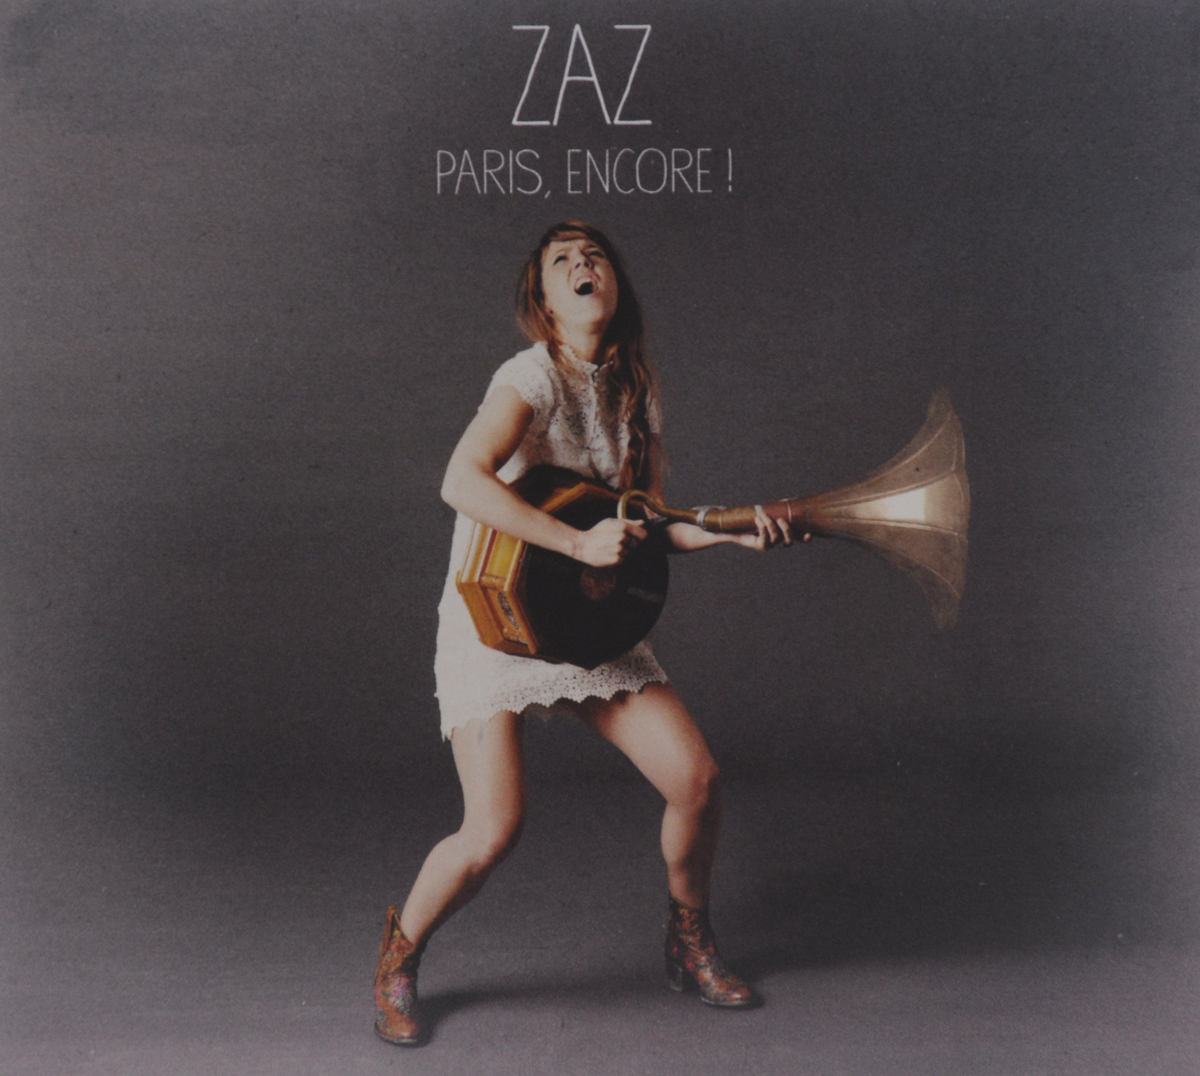 Zaz Zaz. Paris, Encore! (CD + DVD)